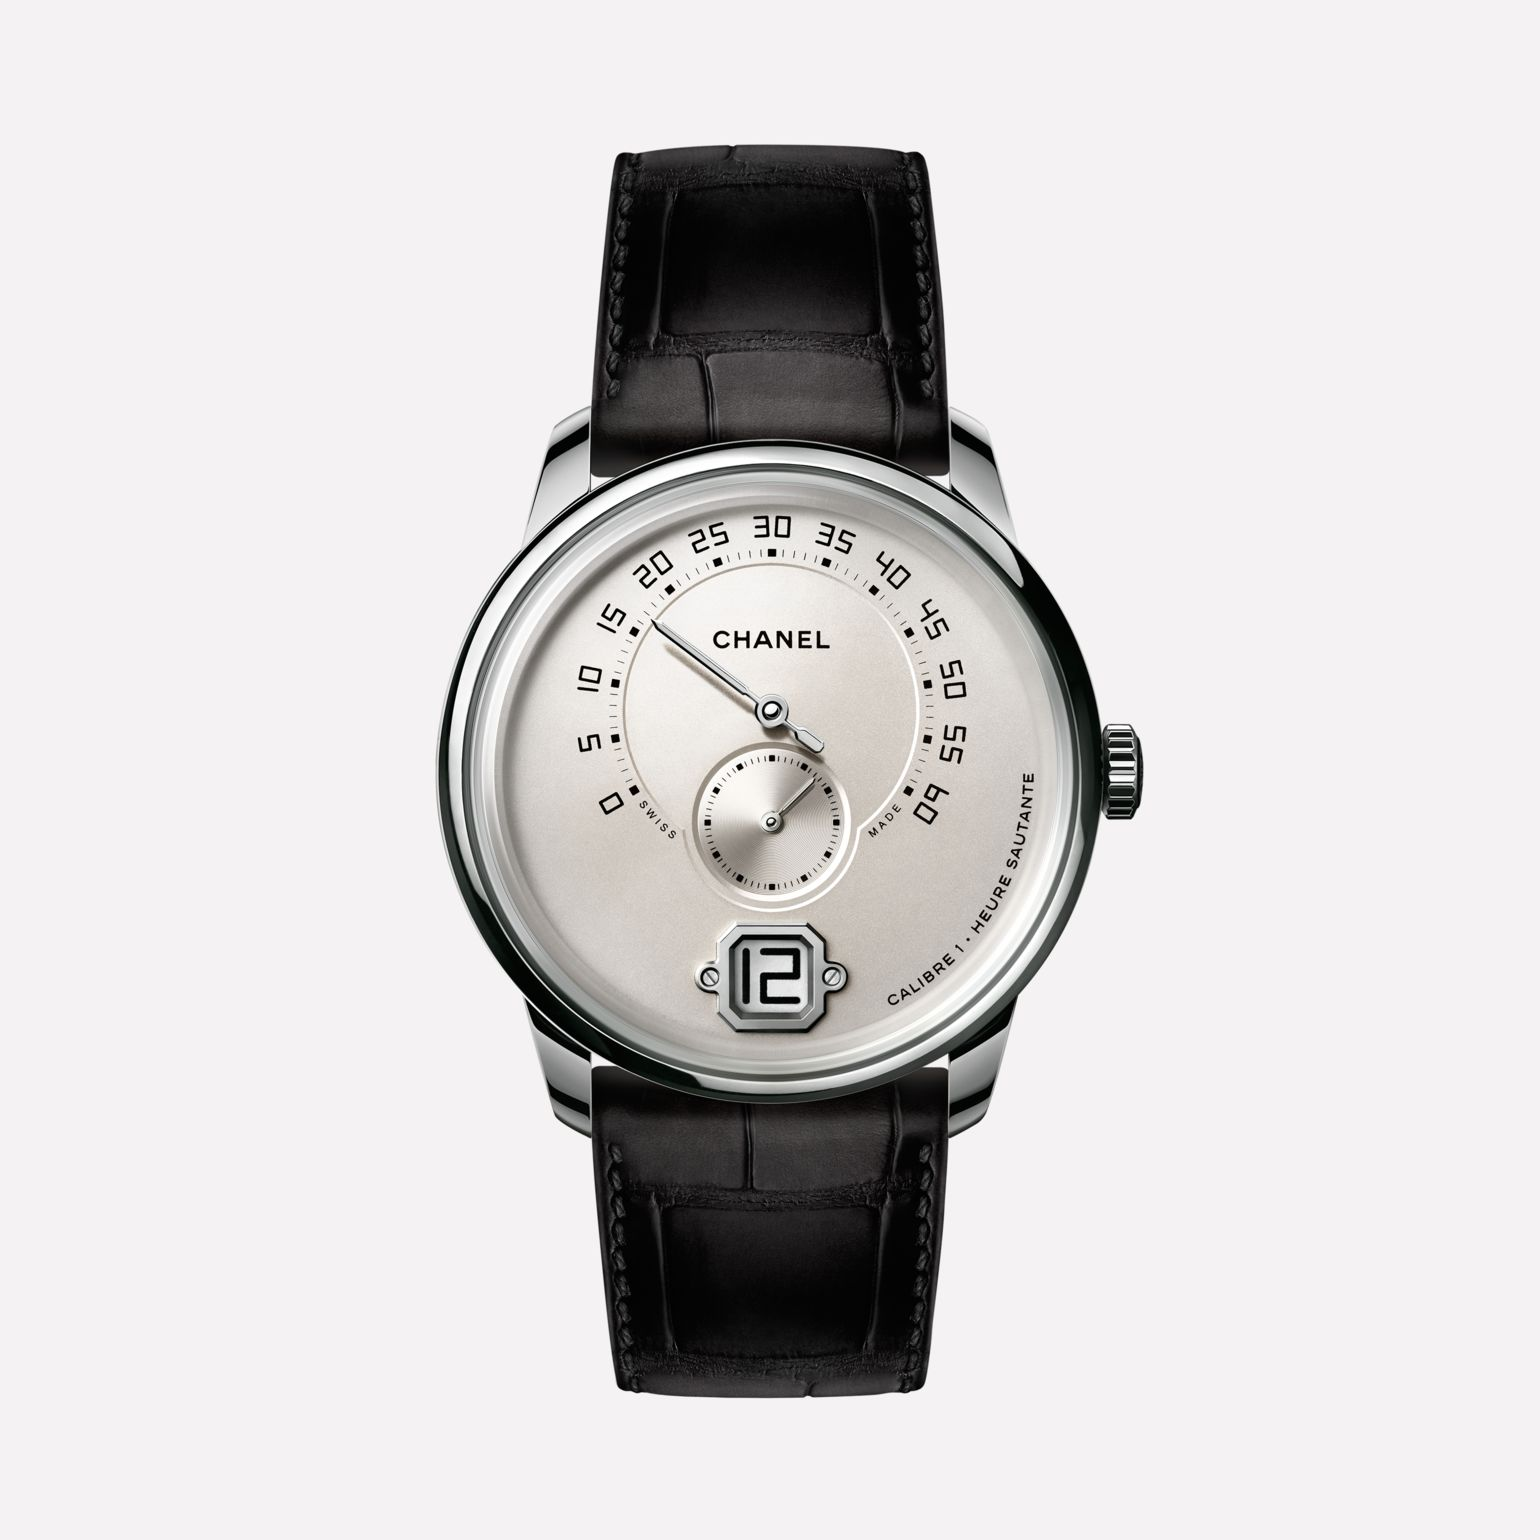 Monsieur Watch White gold, opaline dial with jumping hour, 240° retrograde minute and small second counter